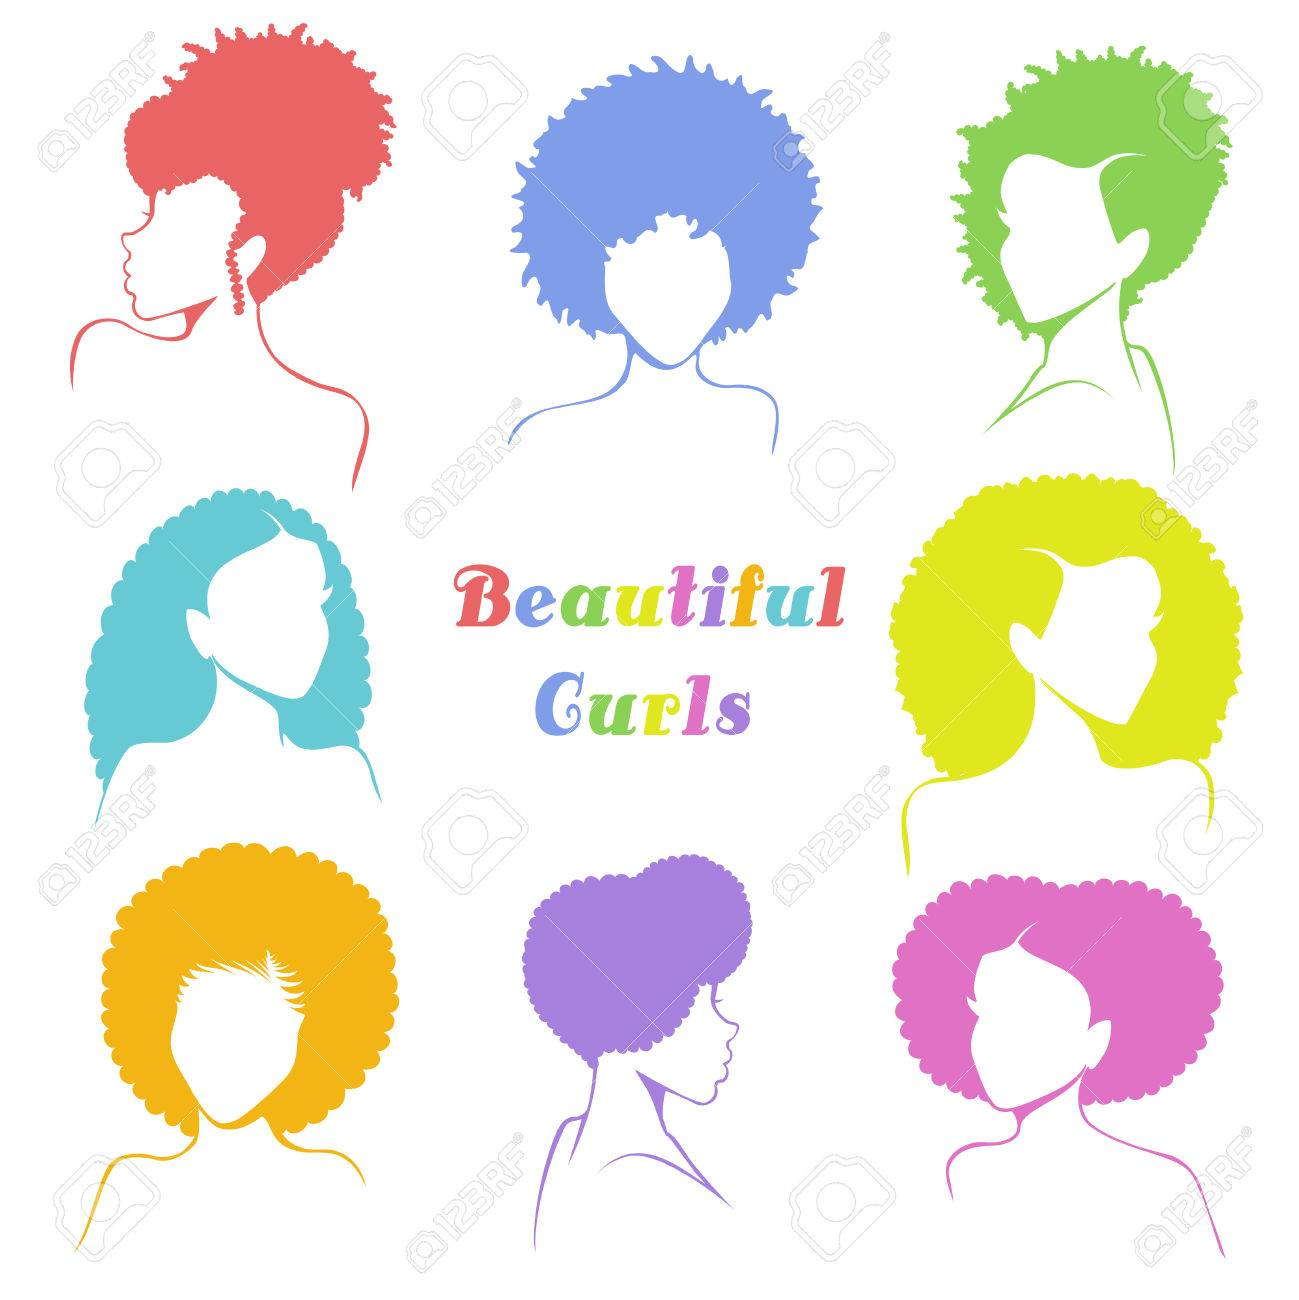 Set of 8 stylized busts of women with natural curly hair. Graphics are grouped and in several layers for easy editing. The file can be scaled to any size. - 80632617